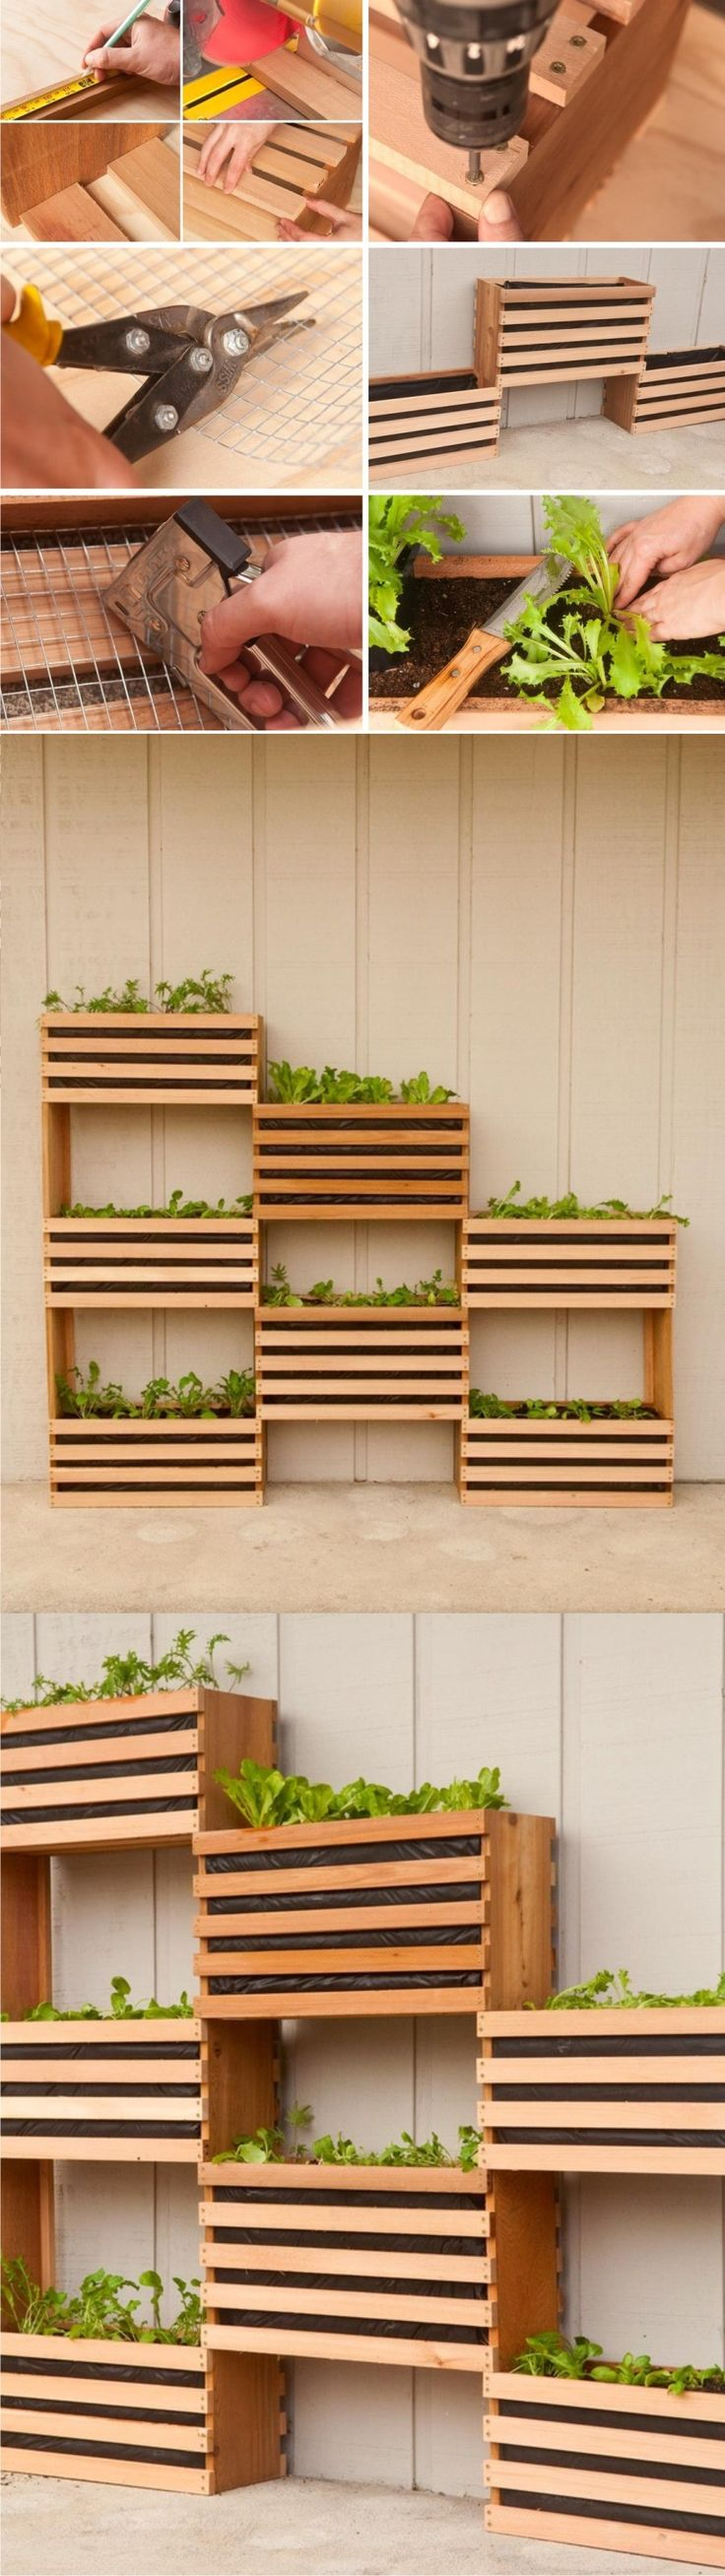 Excellent idea for indoor garden. Space-Saving Vertical Vegetable Garden